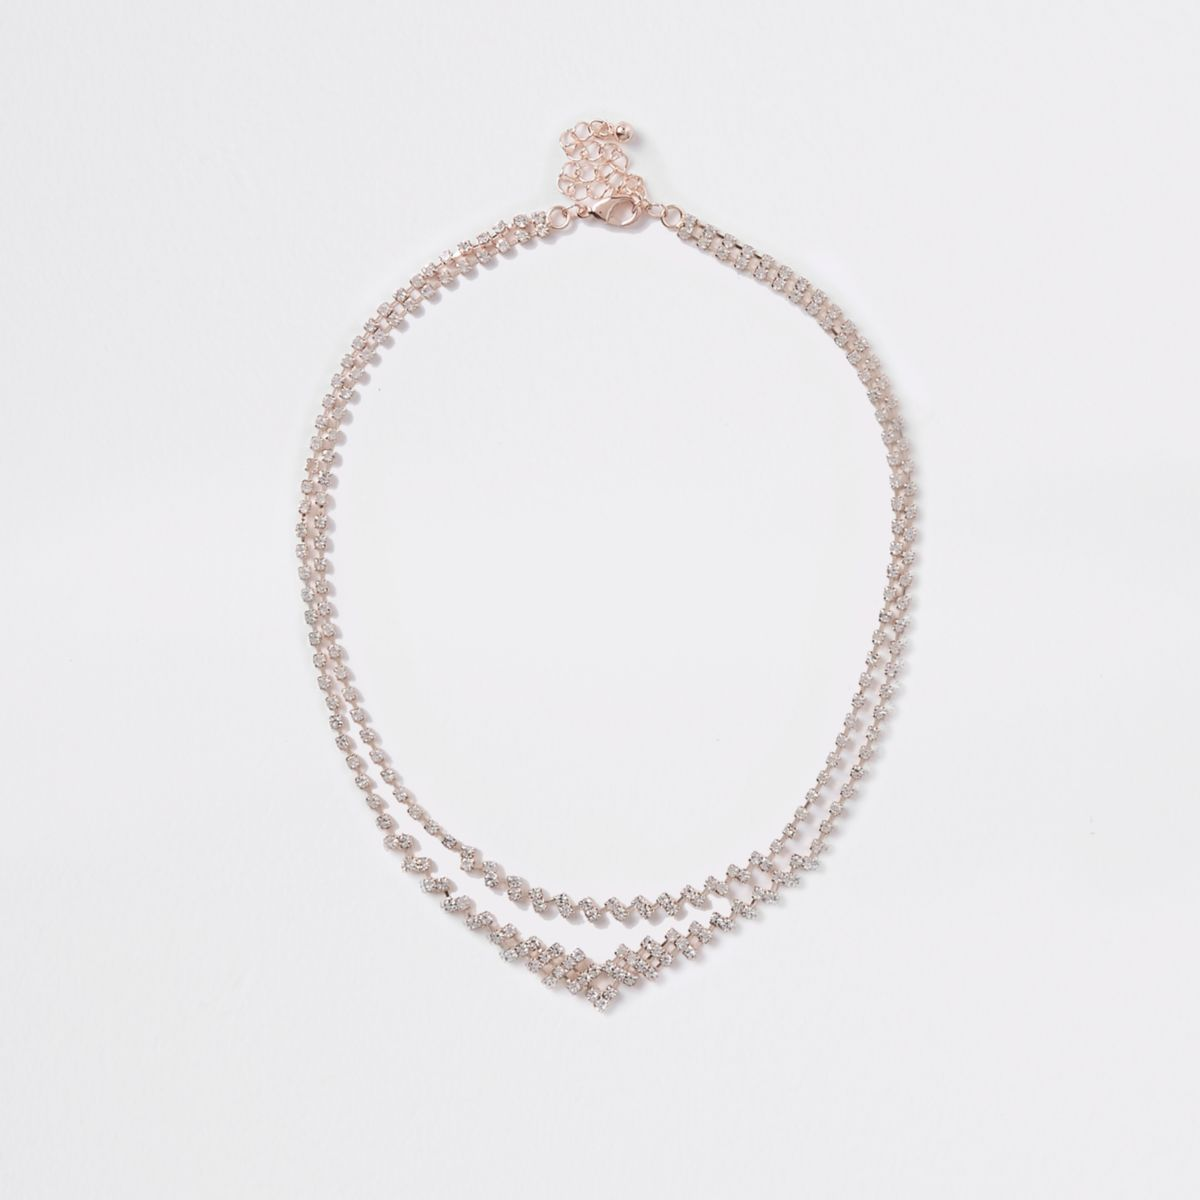 Rose gold tone tiered diamante necklace